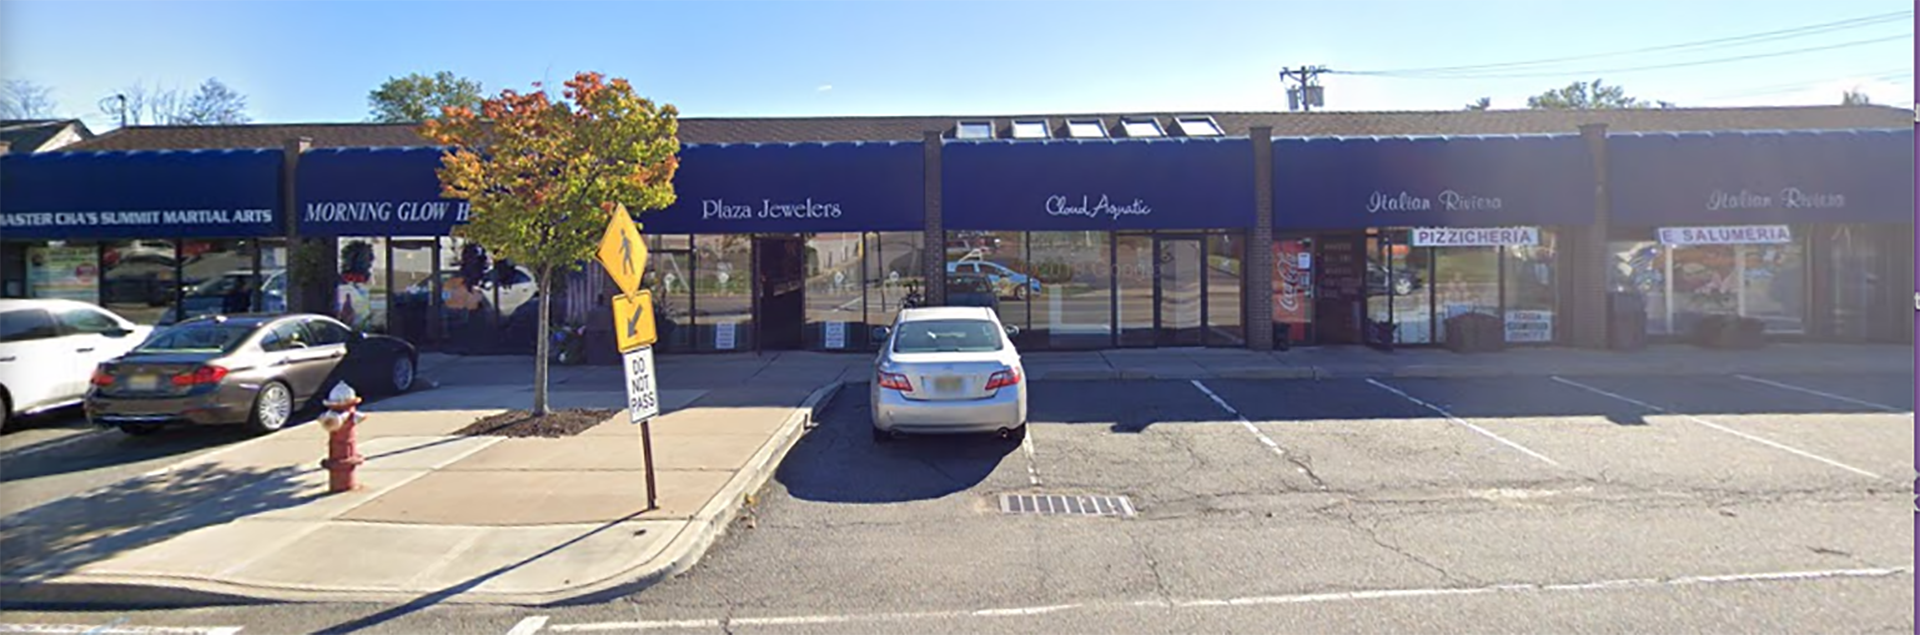 Plaza Jewelers location